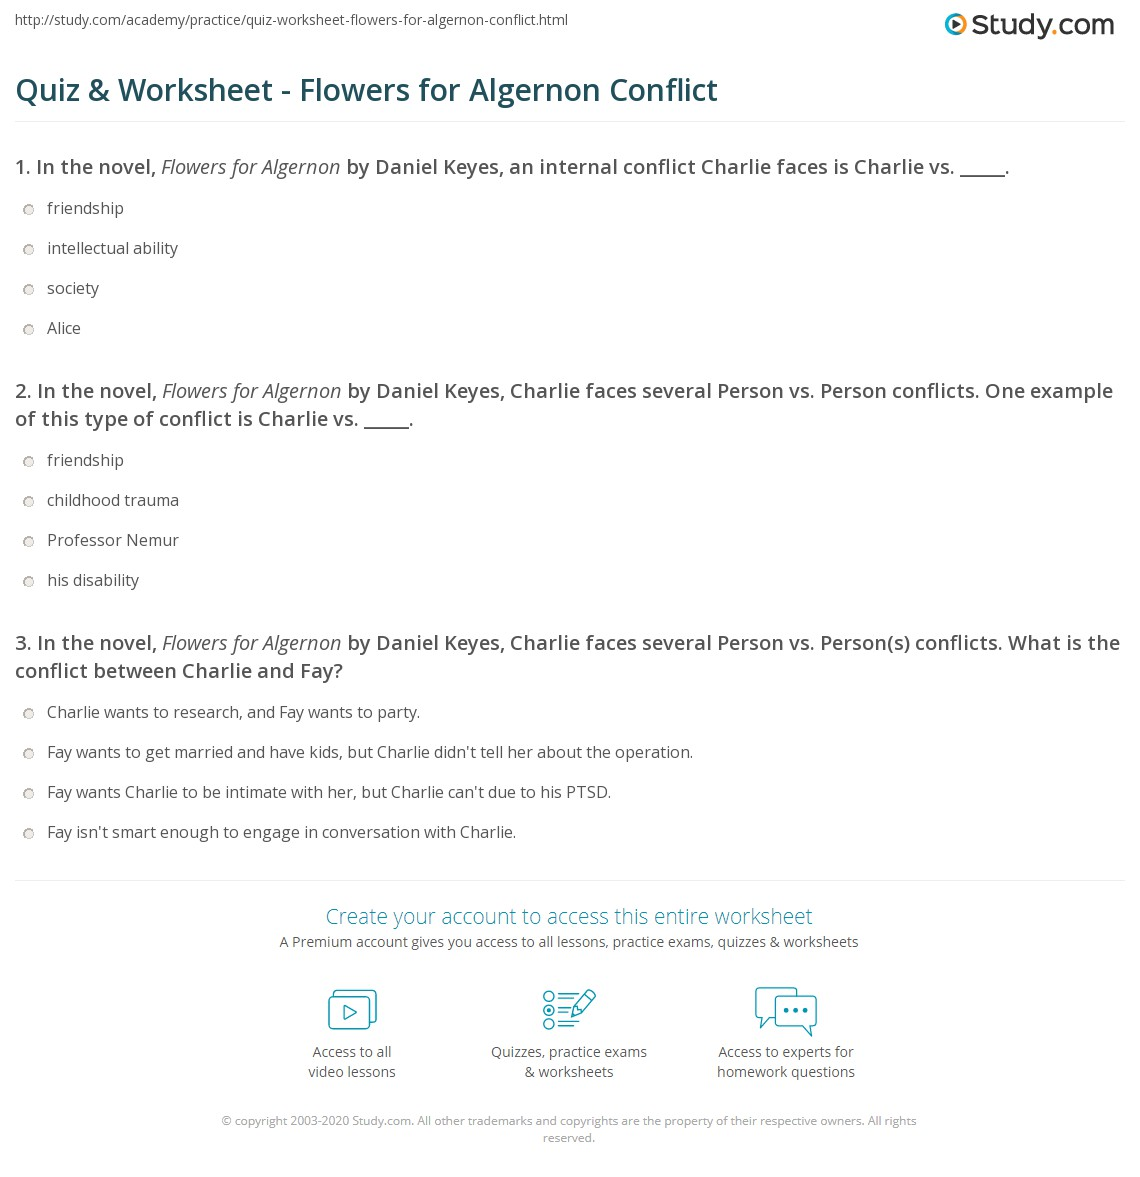 quiz worksheet flowers for algernon conflict com print flowers for algernon conflict worksheet